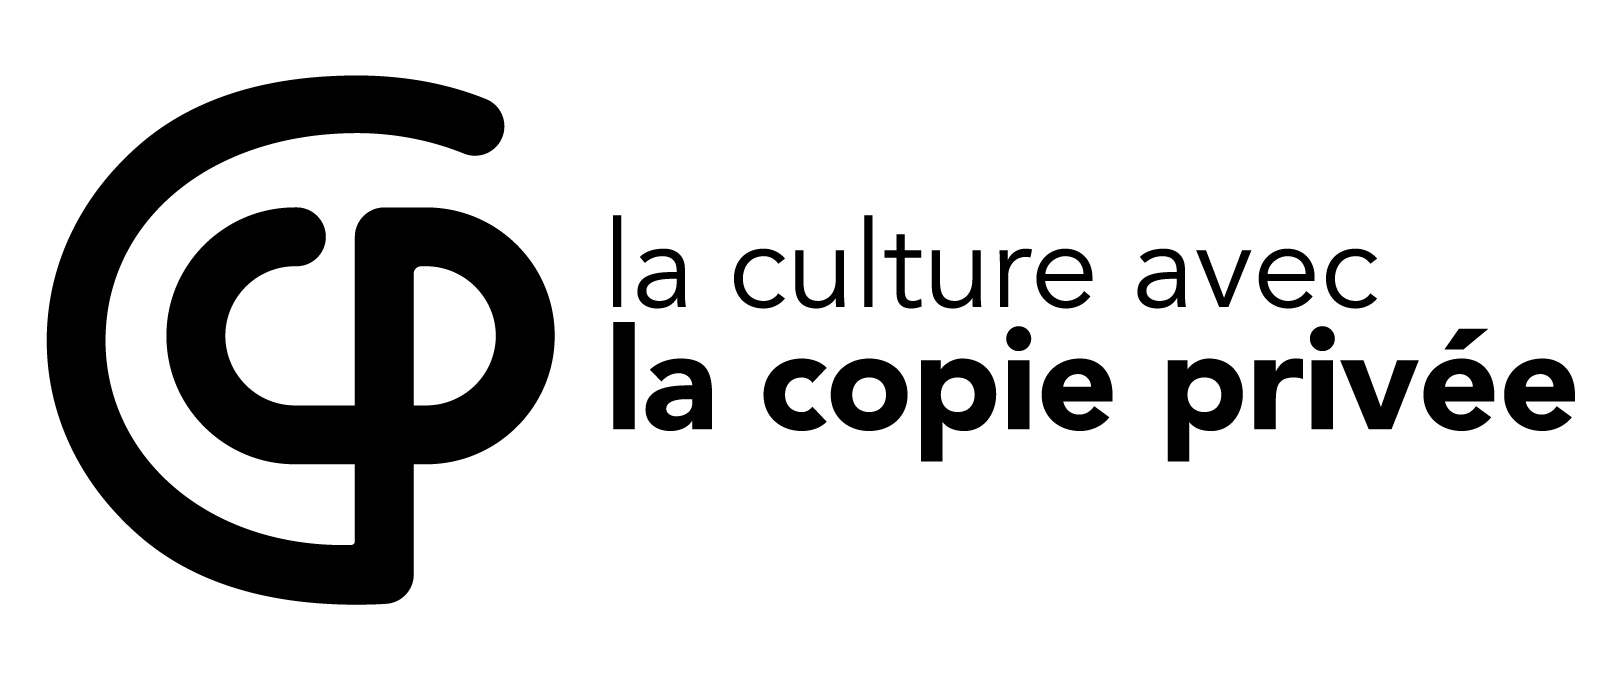 la culture avec la copie privée soutient CDANSLABOITE